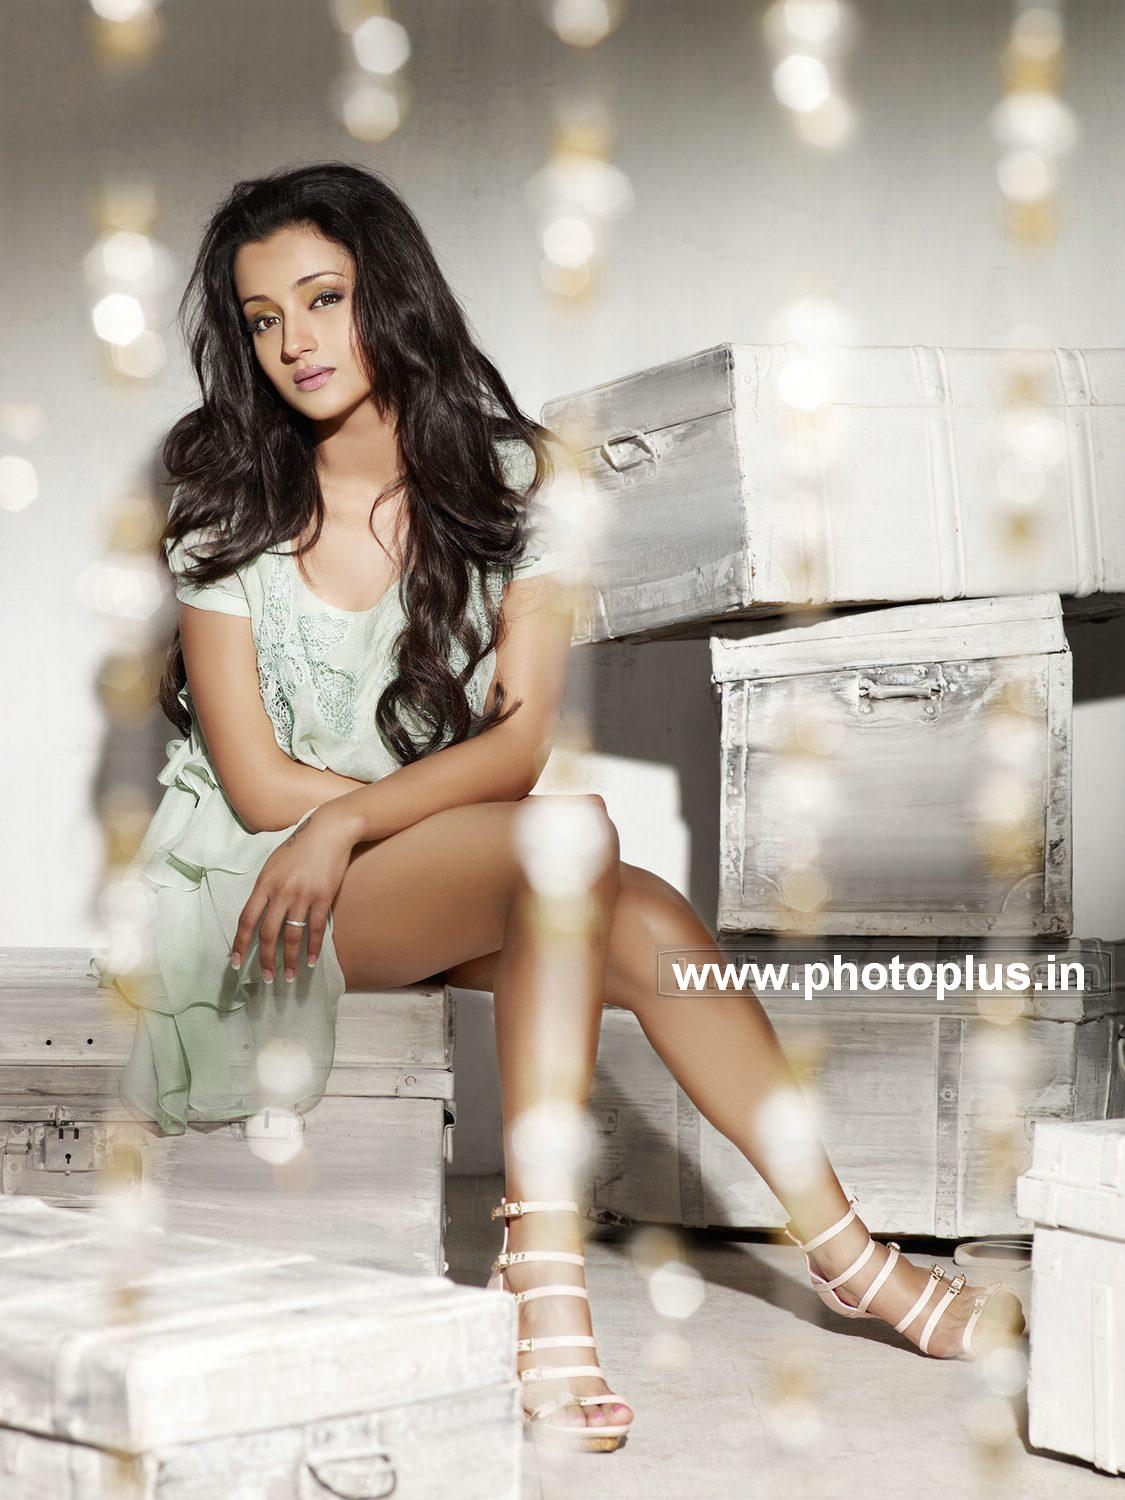 Trisha sexposing hot thighs and cleavage for South Scope magazine photo shoot